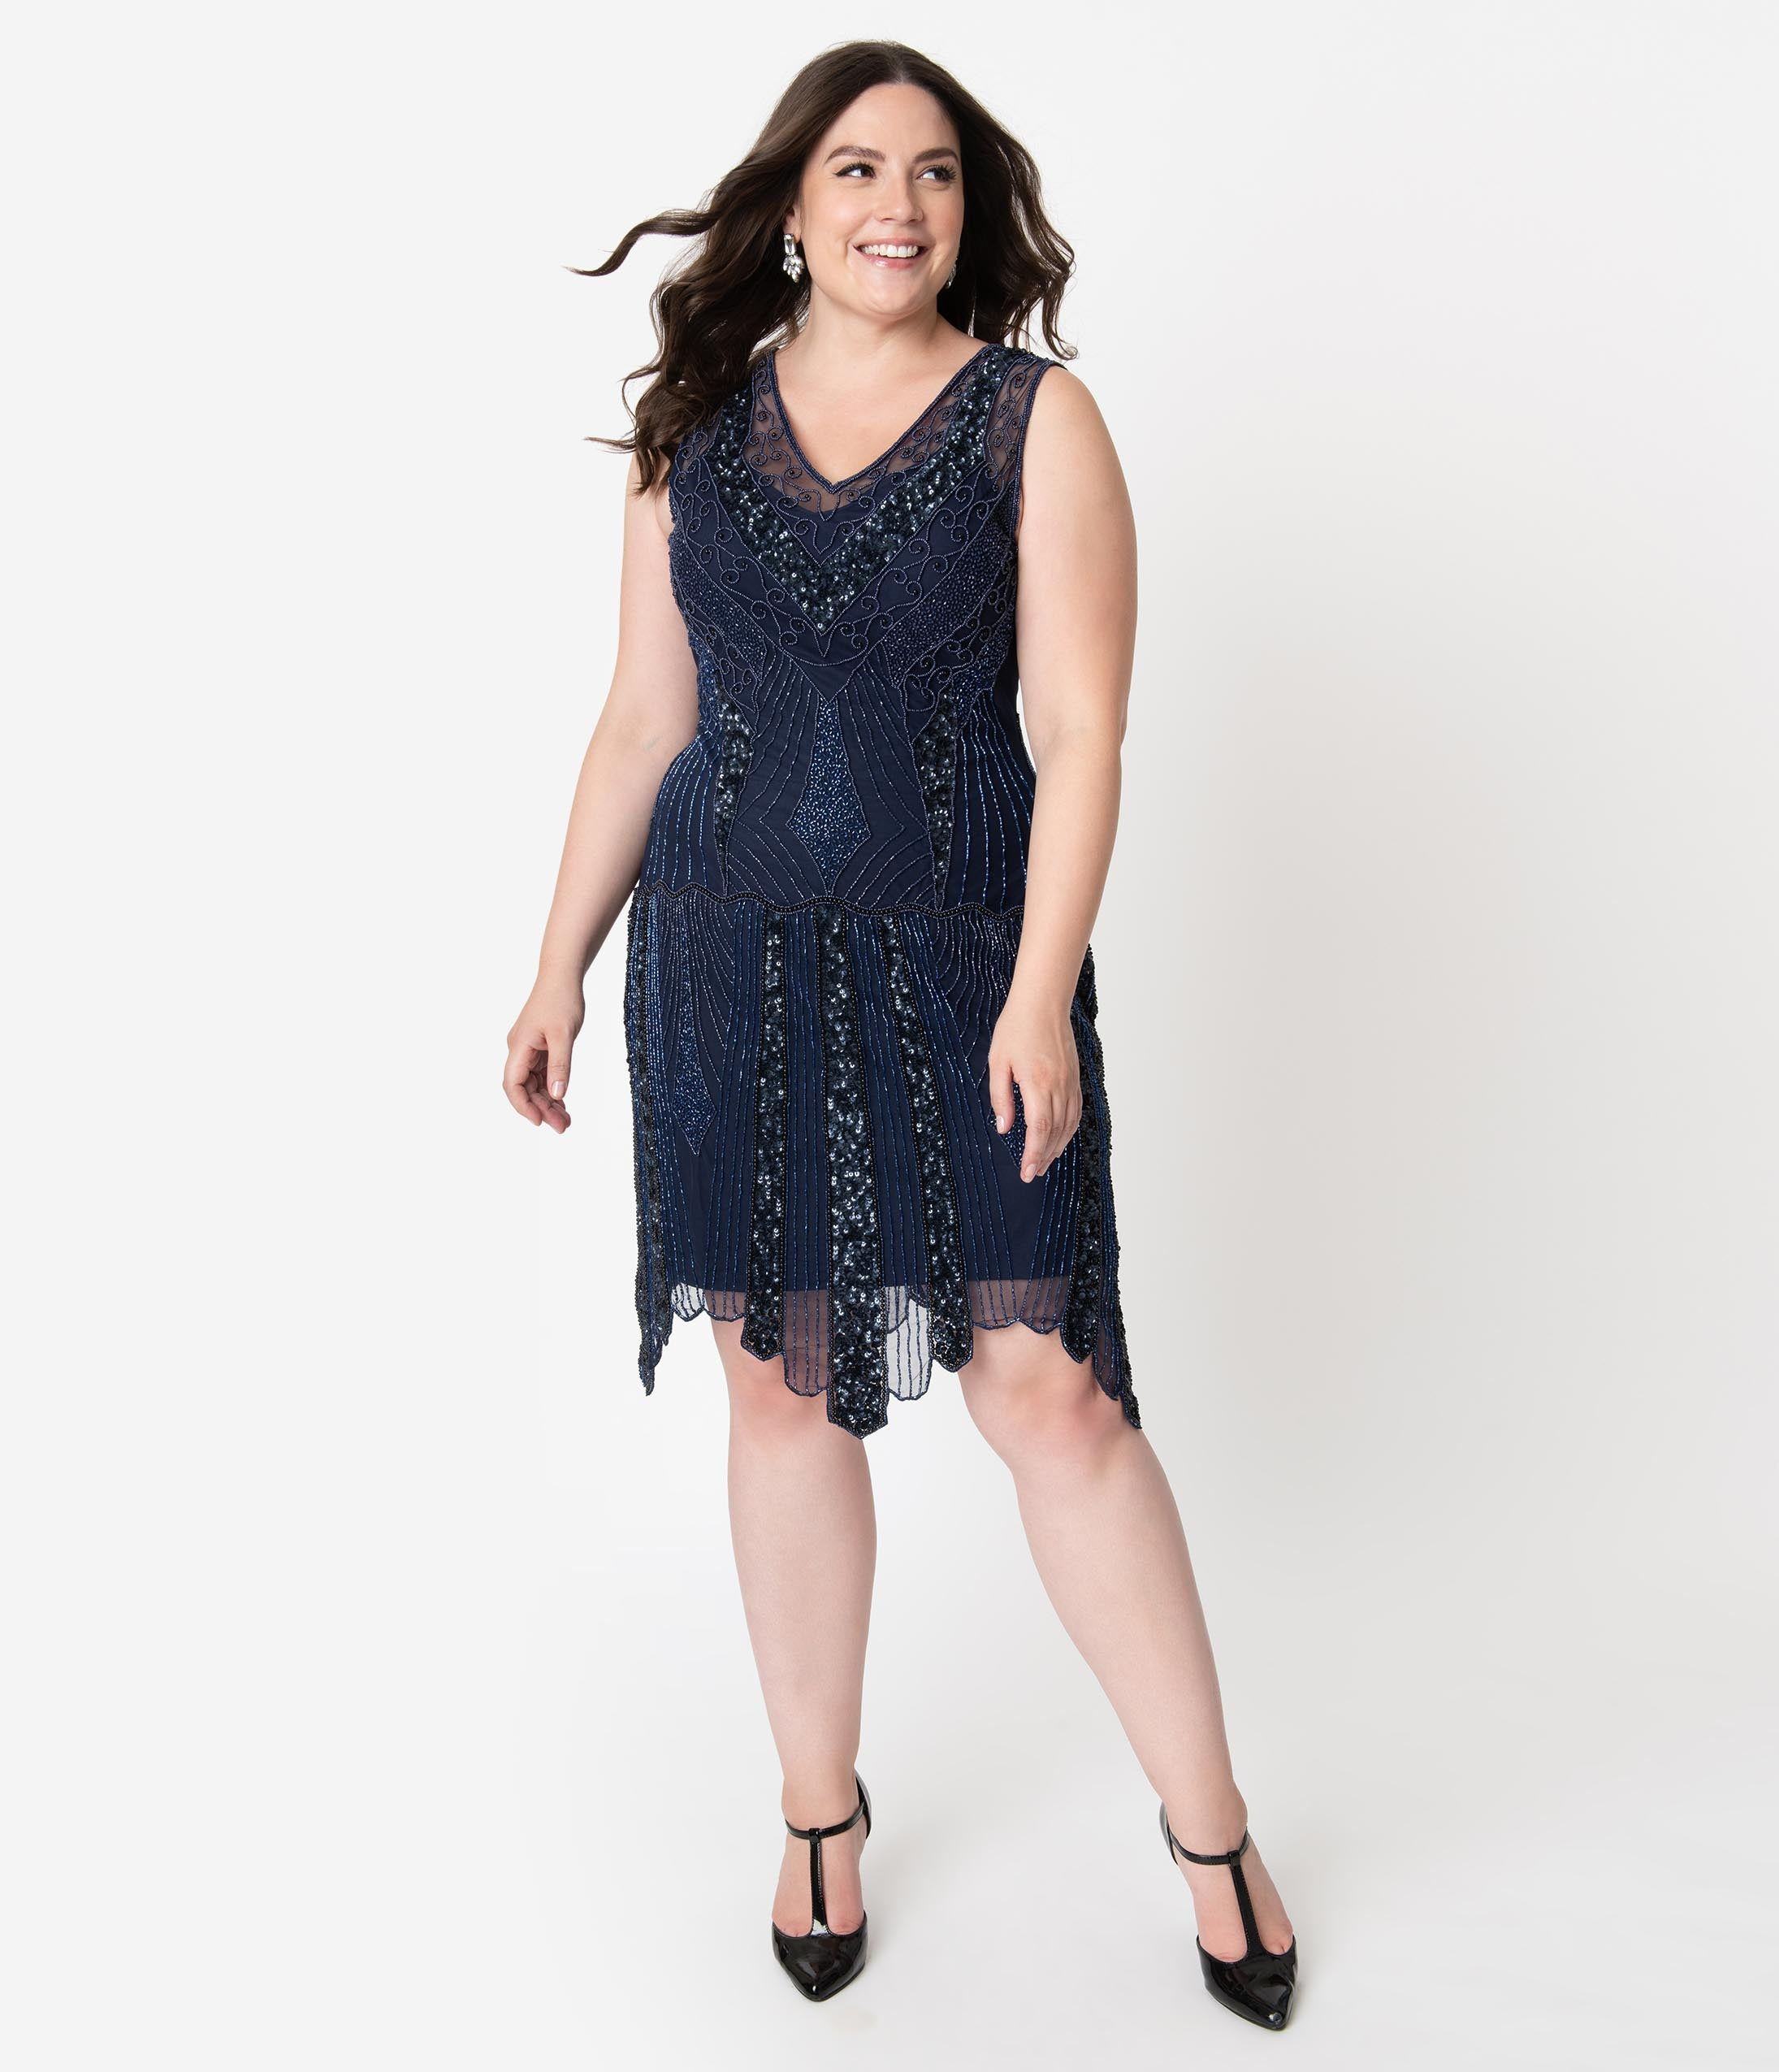 Plus Size Vintage Dresses, Plus Size Retro Dresses Plus Size 1920S Style Navy Blue Beaded Deco Sleeveless Renee Flapper Dress $178.00 AT vintagedancer.com